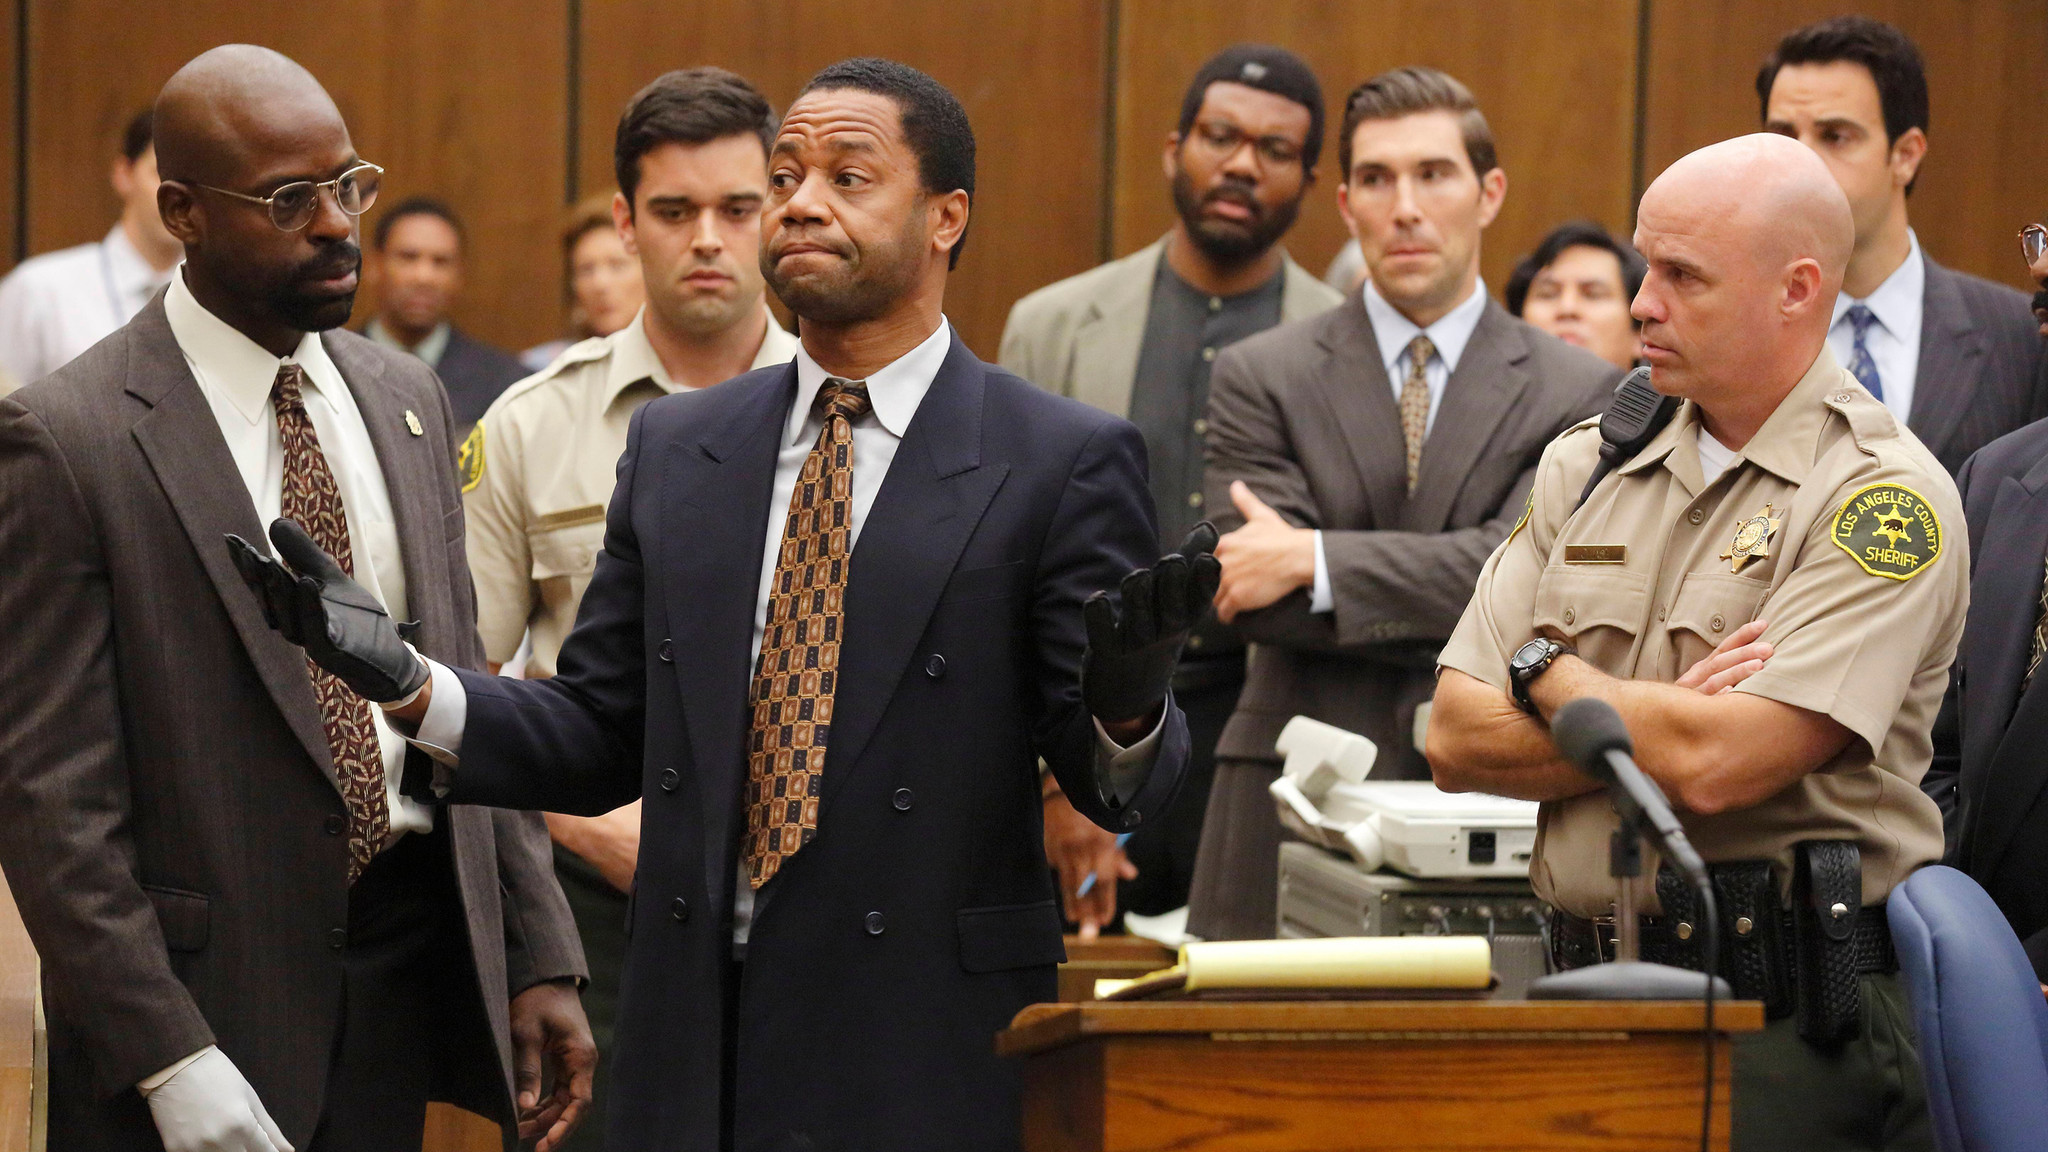 Sterling K. Brown as Christopher Darden (left) and Cuba Gooding Jr. as O.J. Simpson (middle). (Ray Mickshaw / FX)